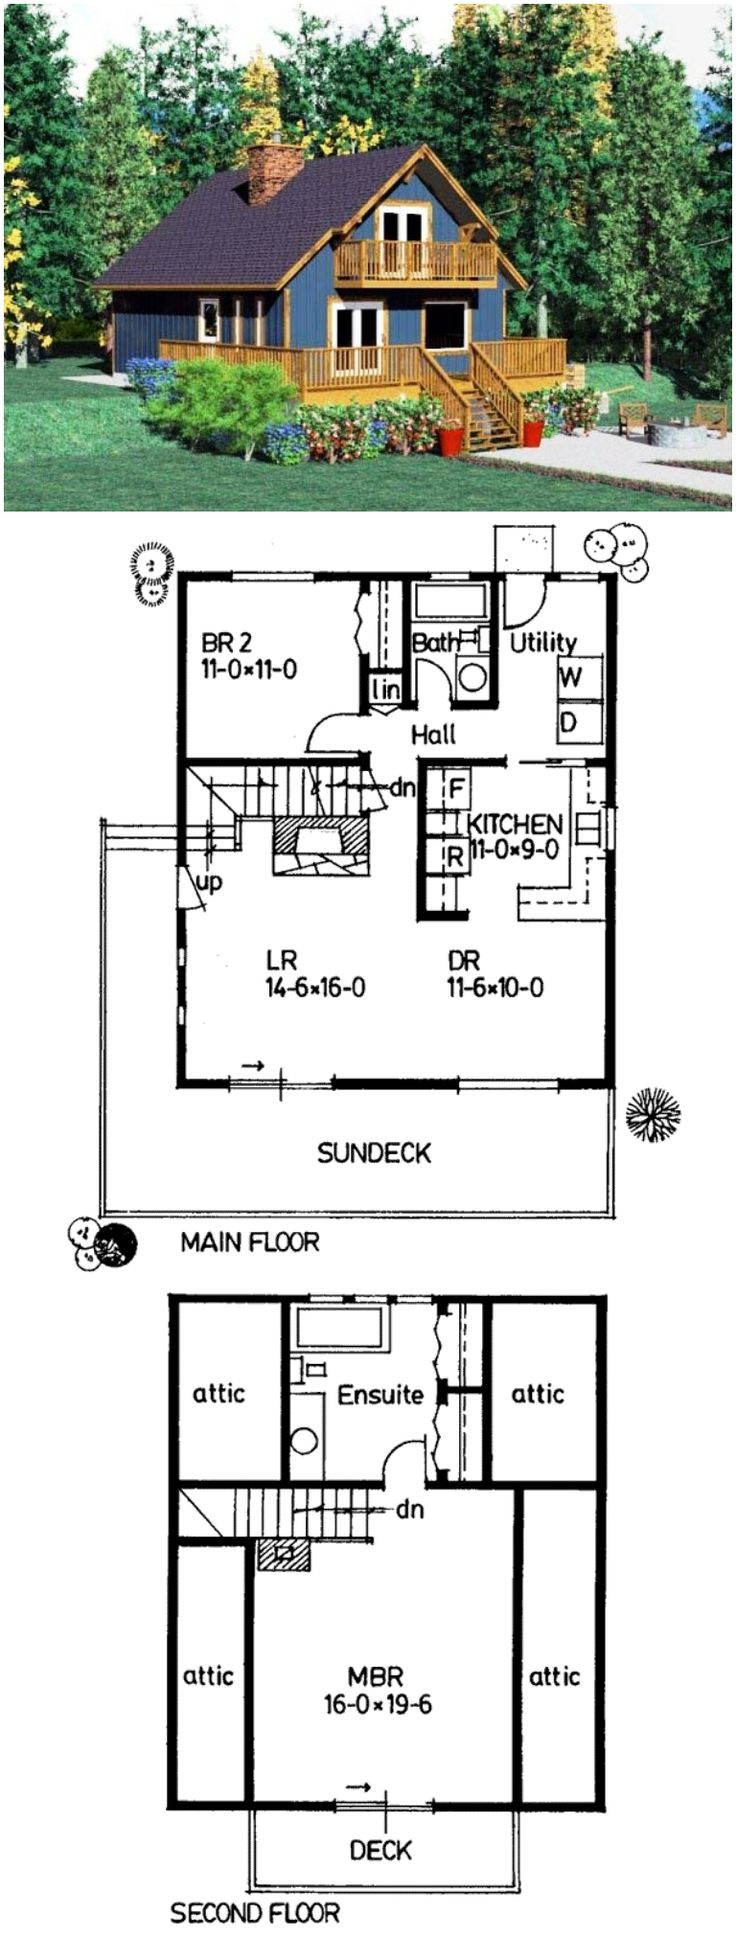 25 best ideas about tiny house plans on pinterest small My family house plans